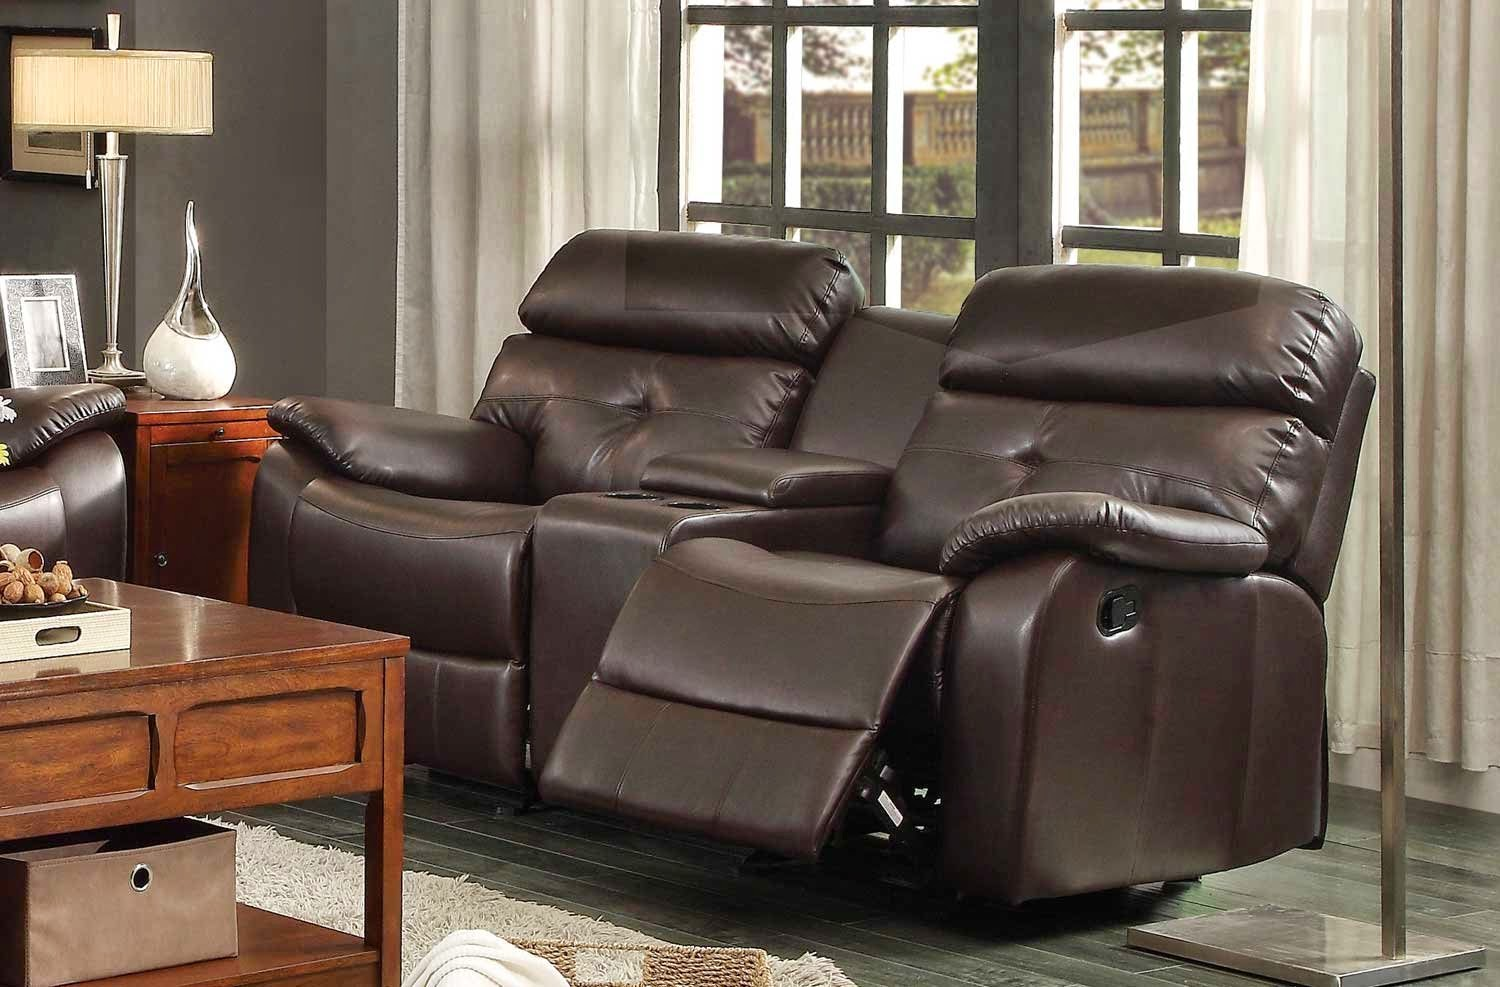 Reclining Sofa With Cup Holders Cheap Recliner Sofas For Sale: Curved Leather Reclining ...